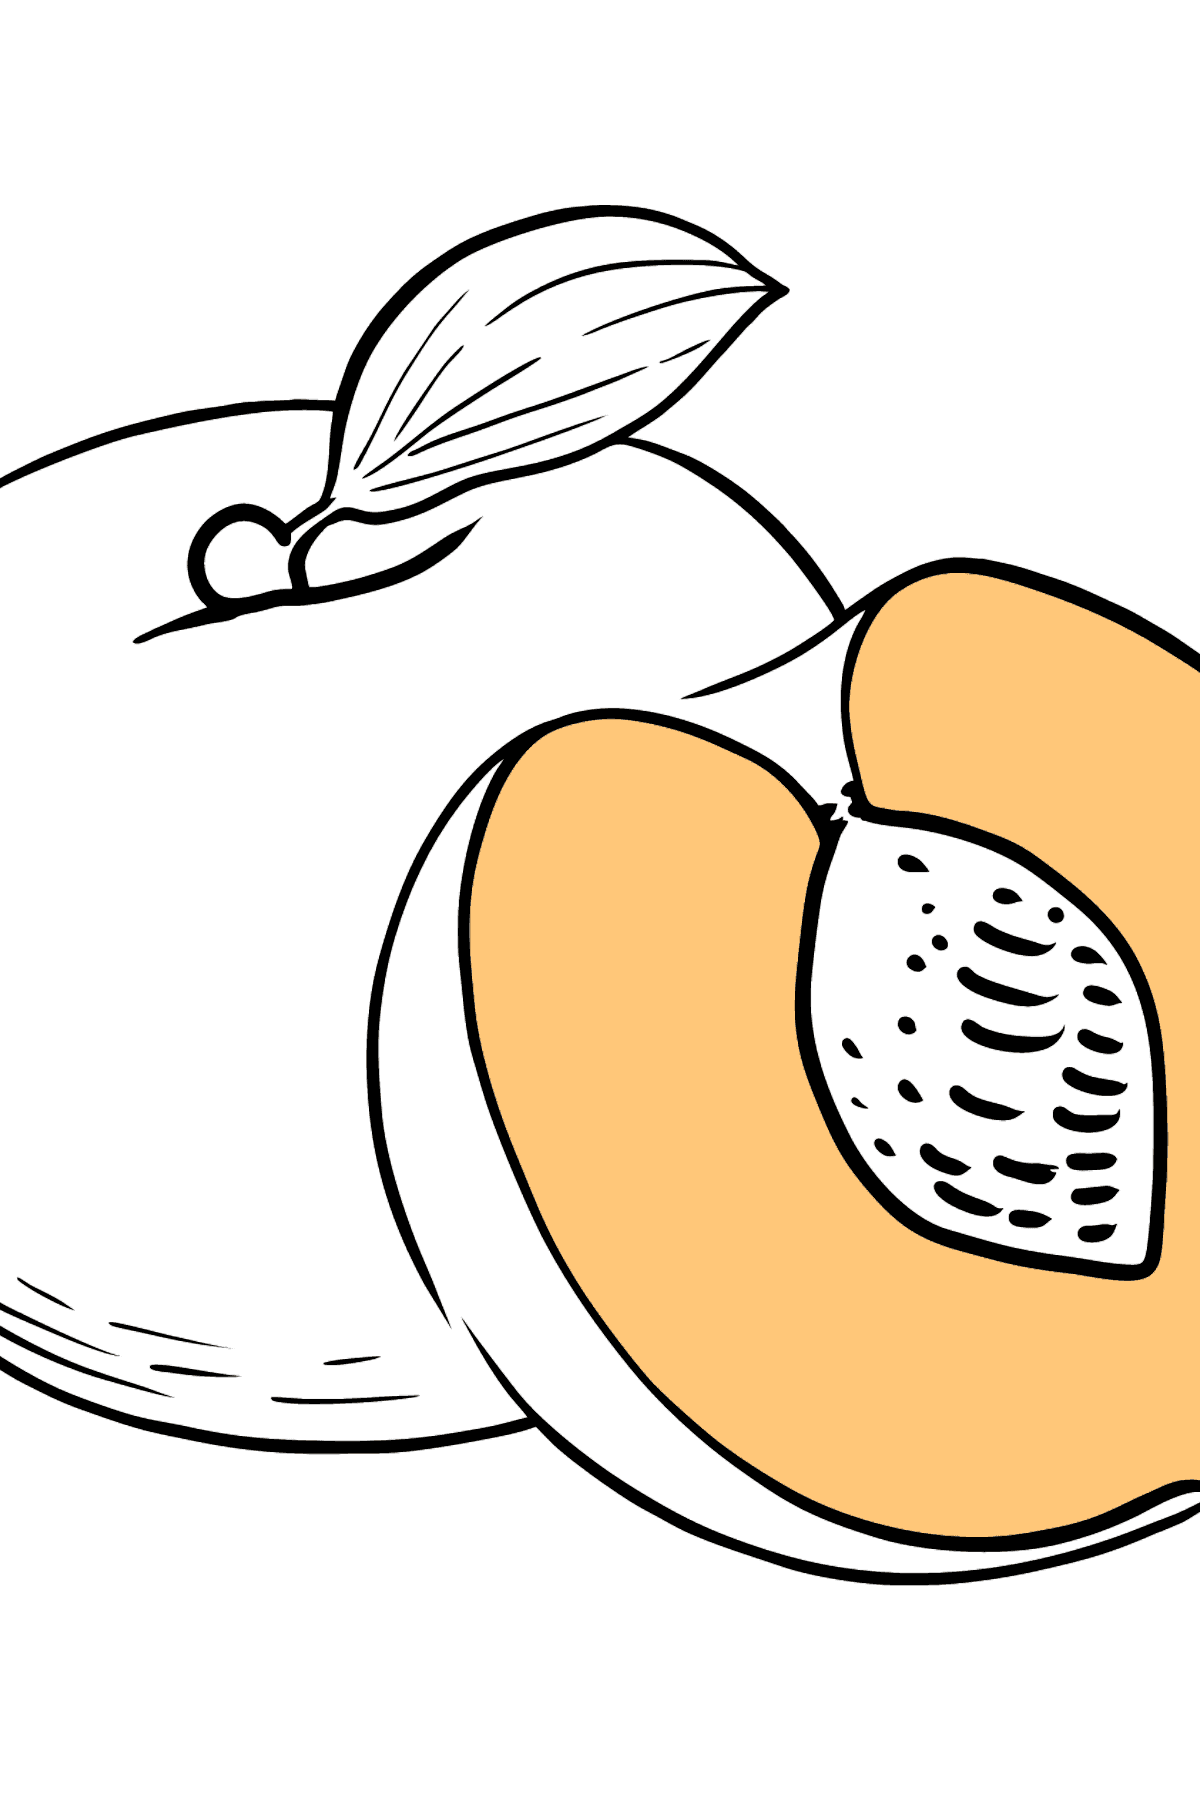 Peache coloring page - Coloring Pages for Kids